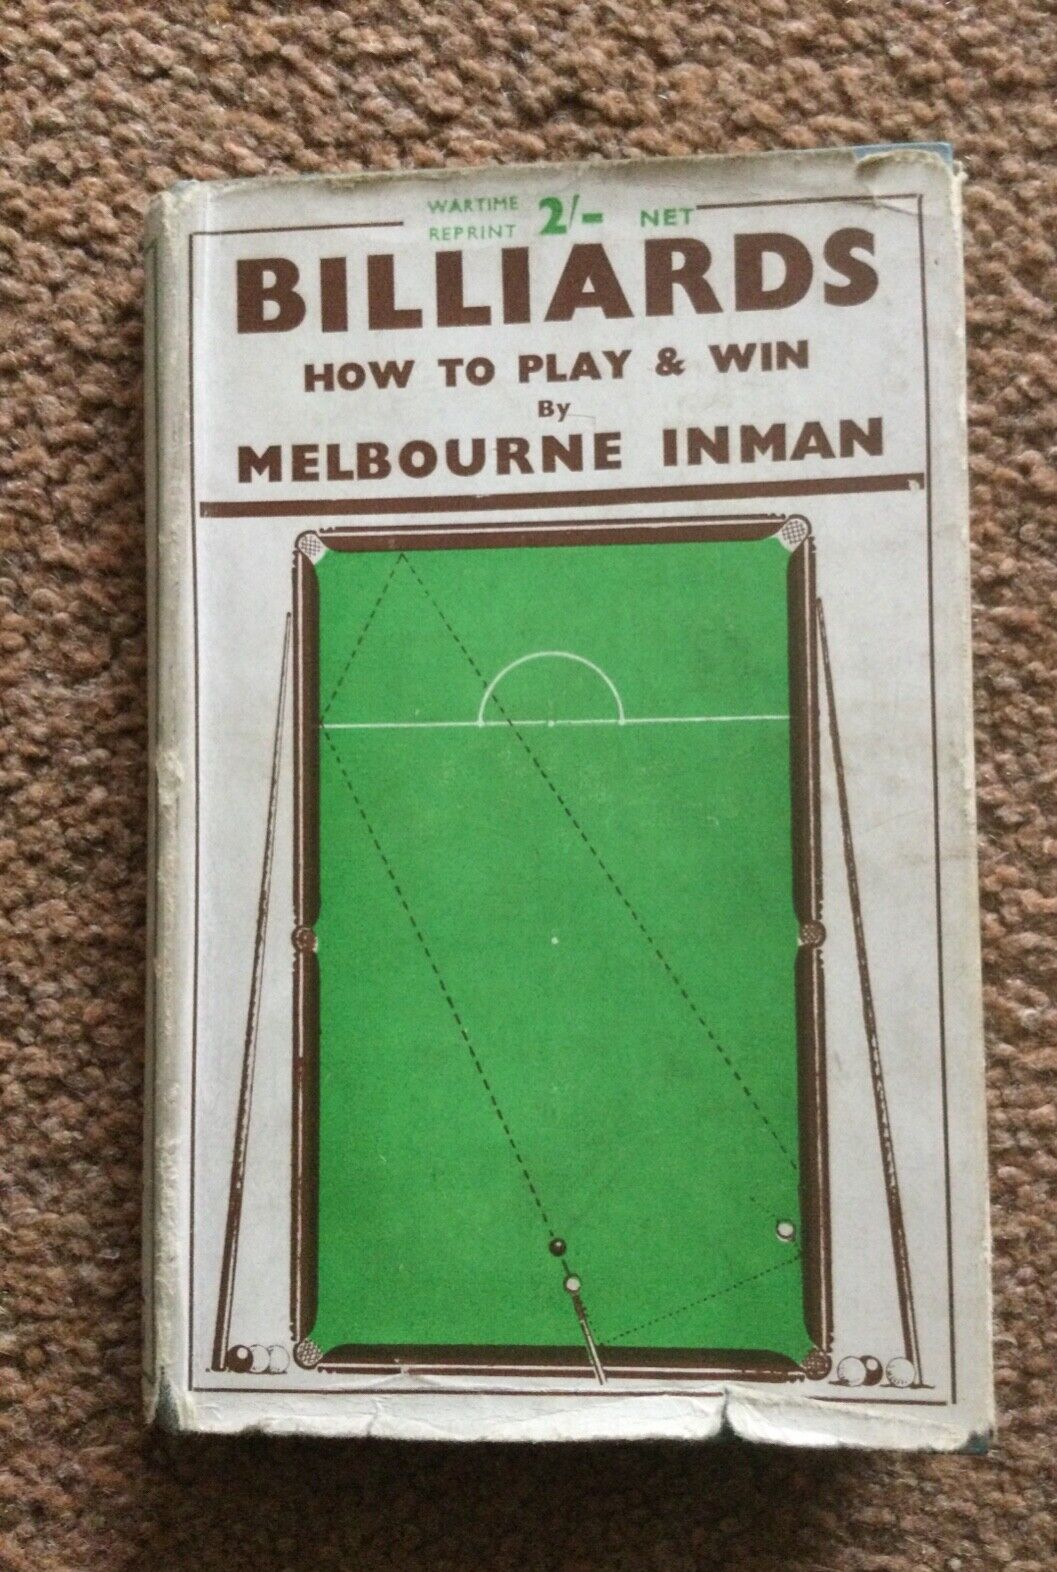 Billiards How to Play and Win by Melbourne Inman, Foulsham and Co Ltd